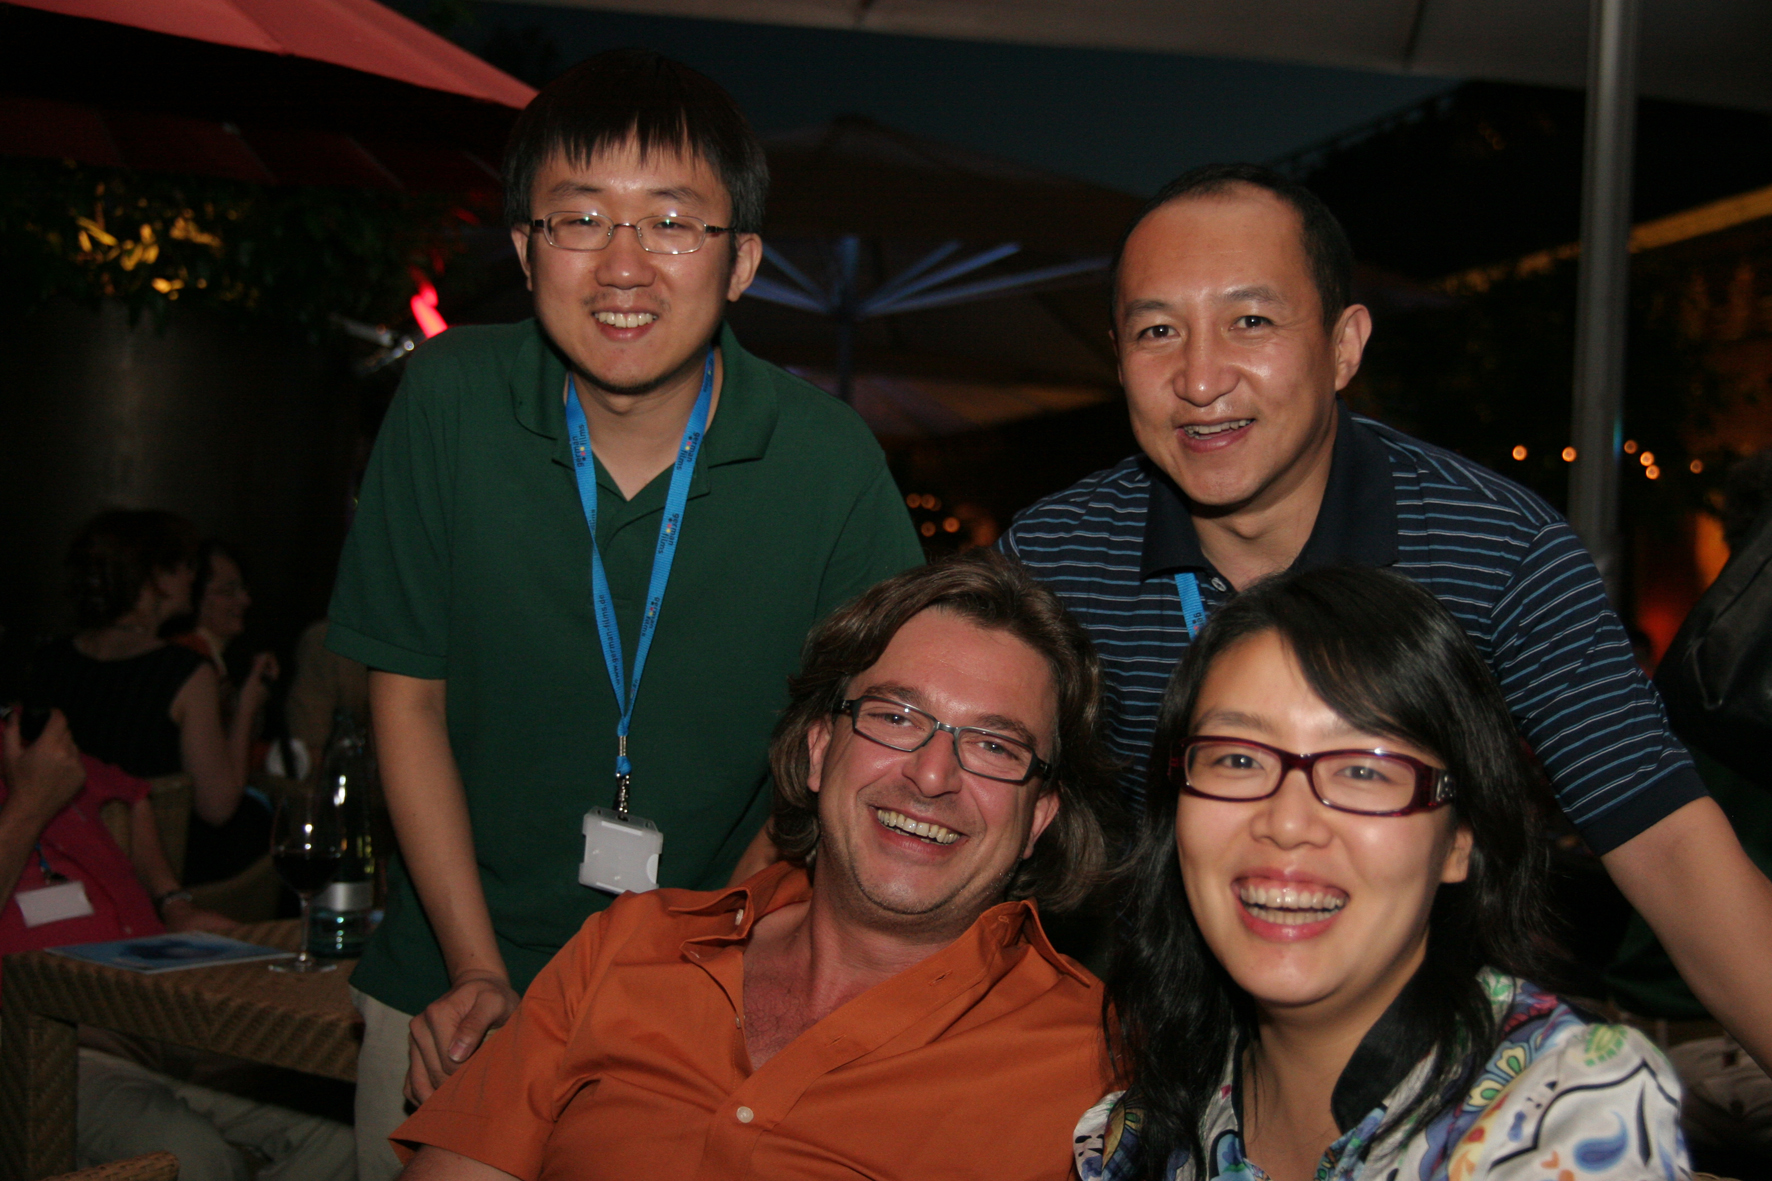 Beta Cinema's Andreas Rothbauer with buyers from China, courtesy: Klaas Dierks/German Films